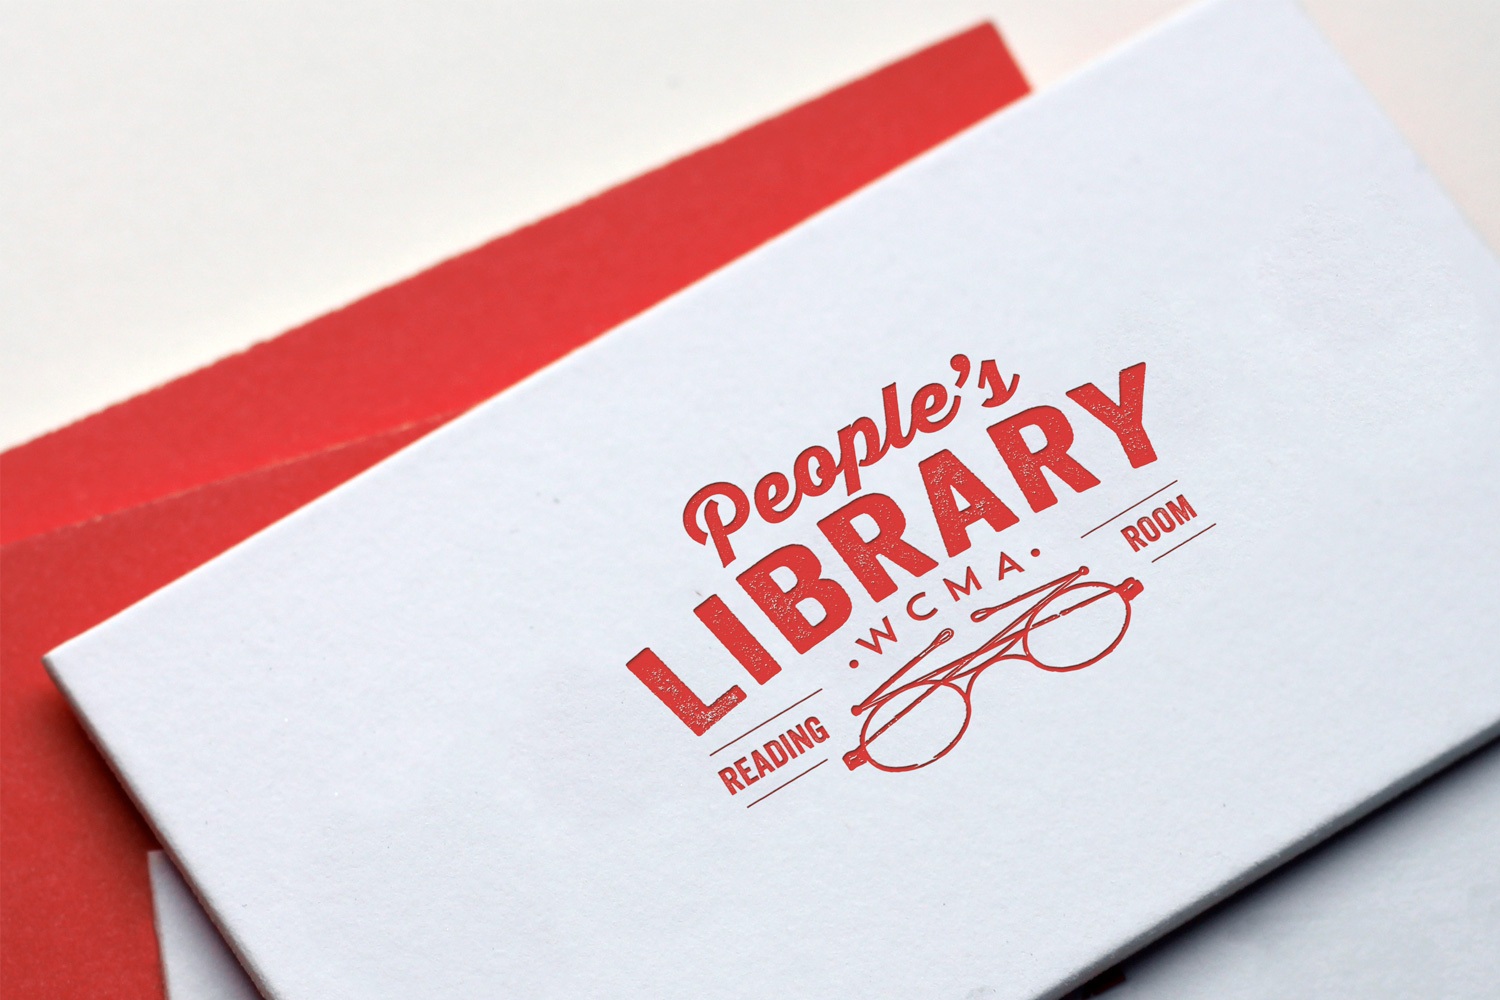 People's Library